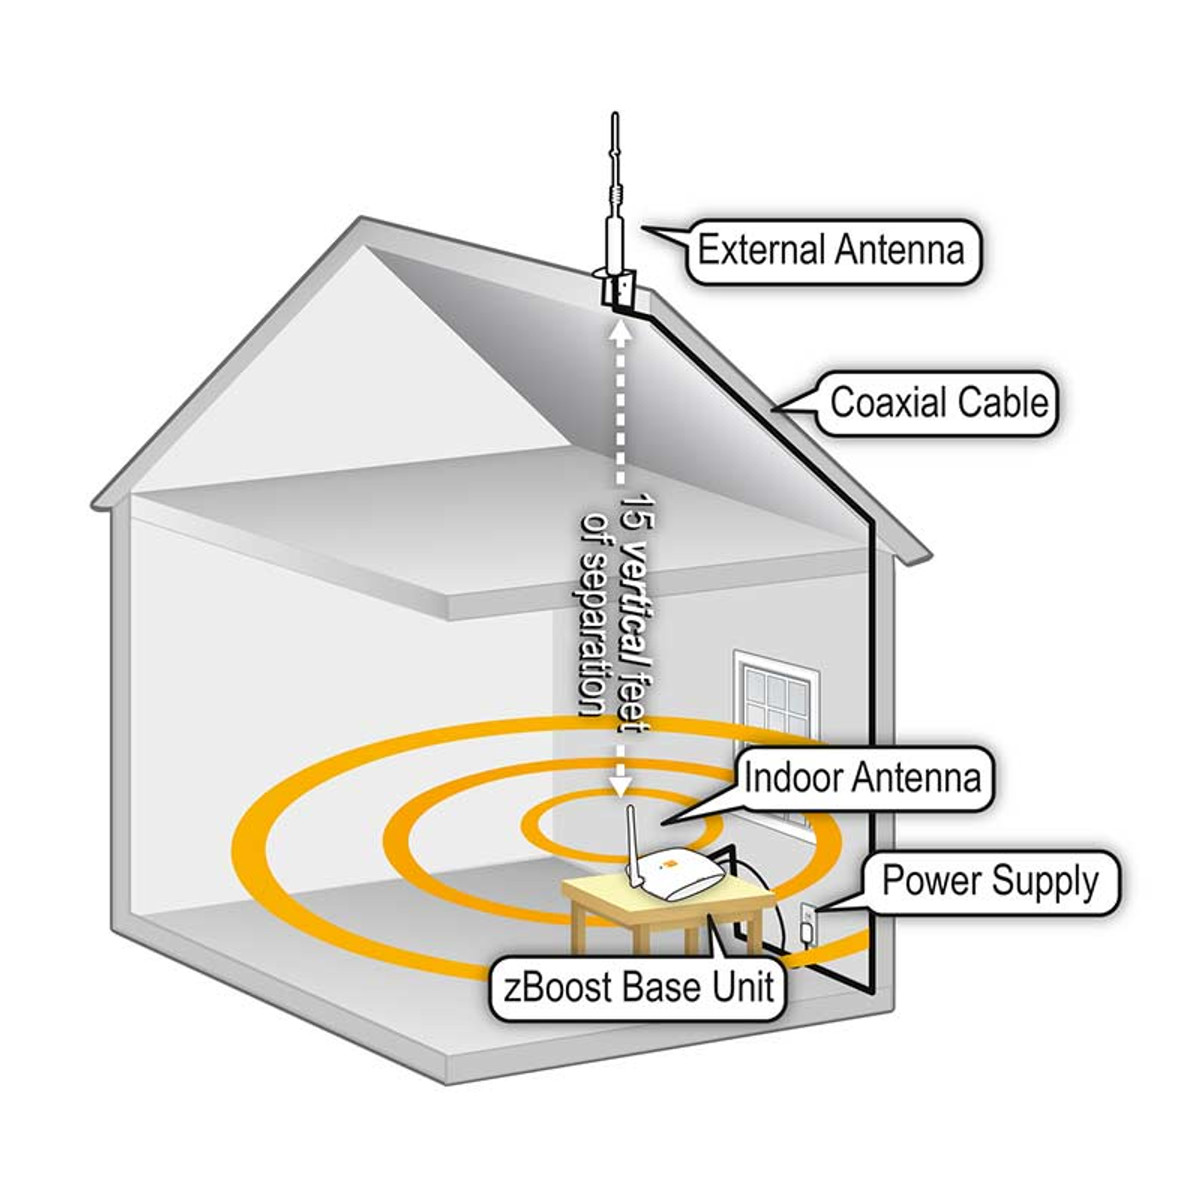 zBoost SOHO Cell Phone Signal Booster   ZB545 - Diagram